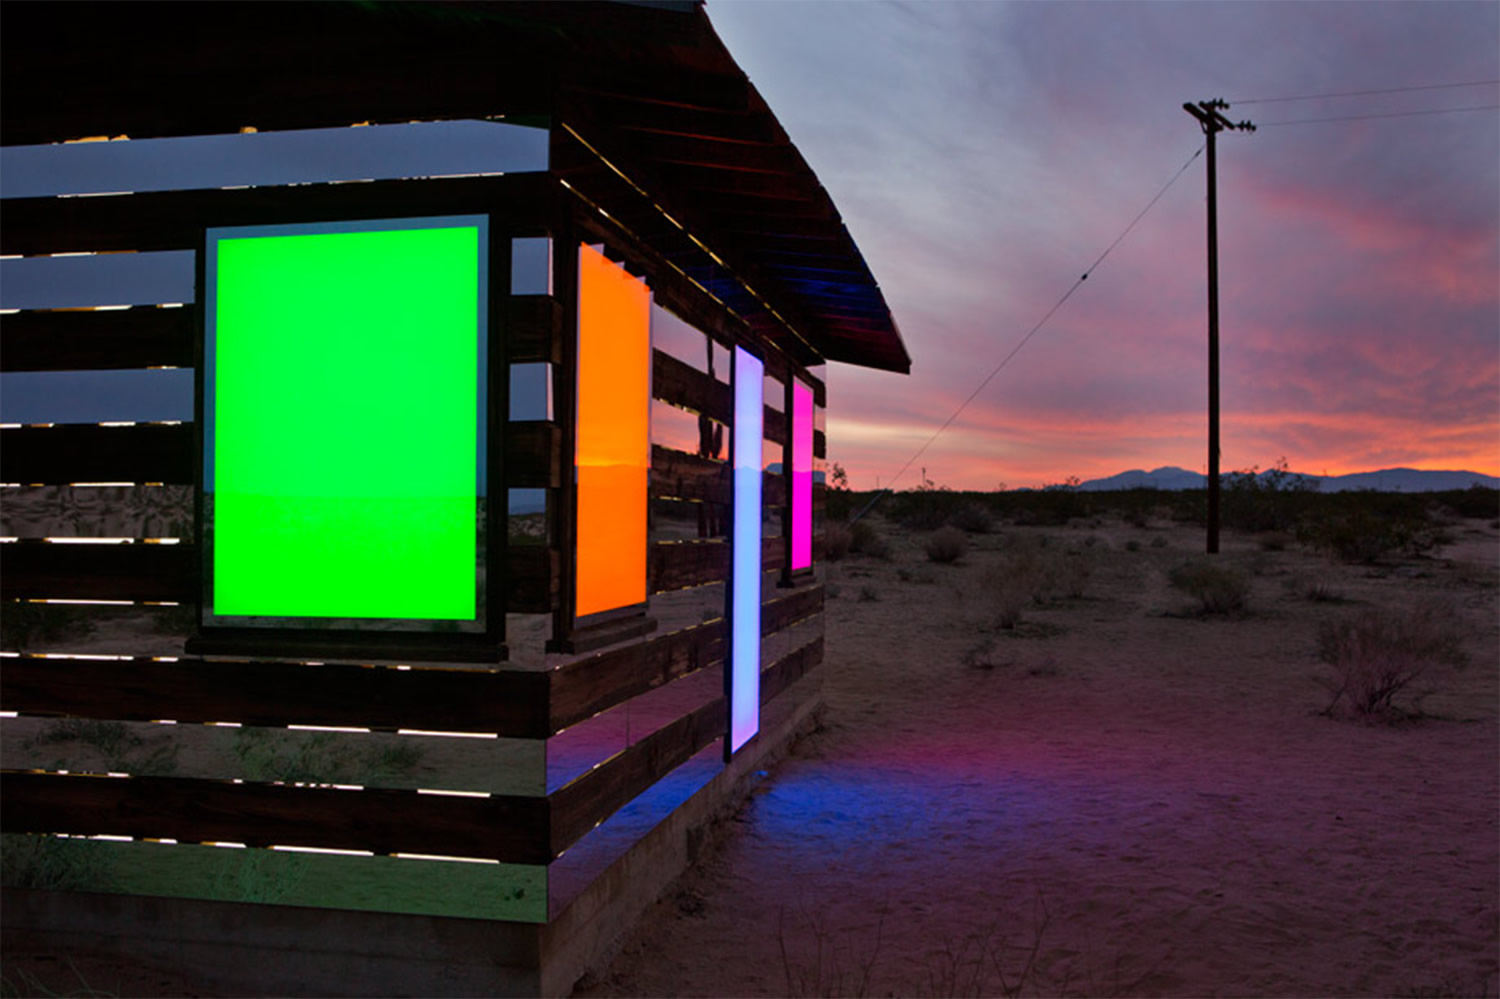 side view of lucid stead, with colored windows by phillip k smith